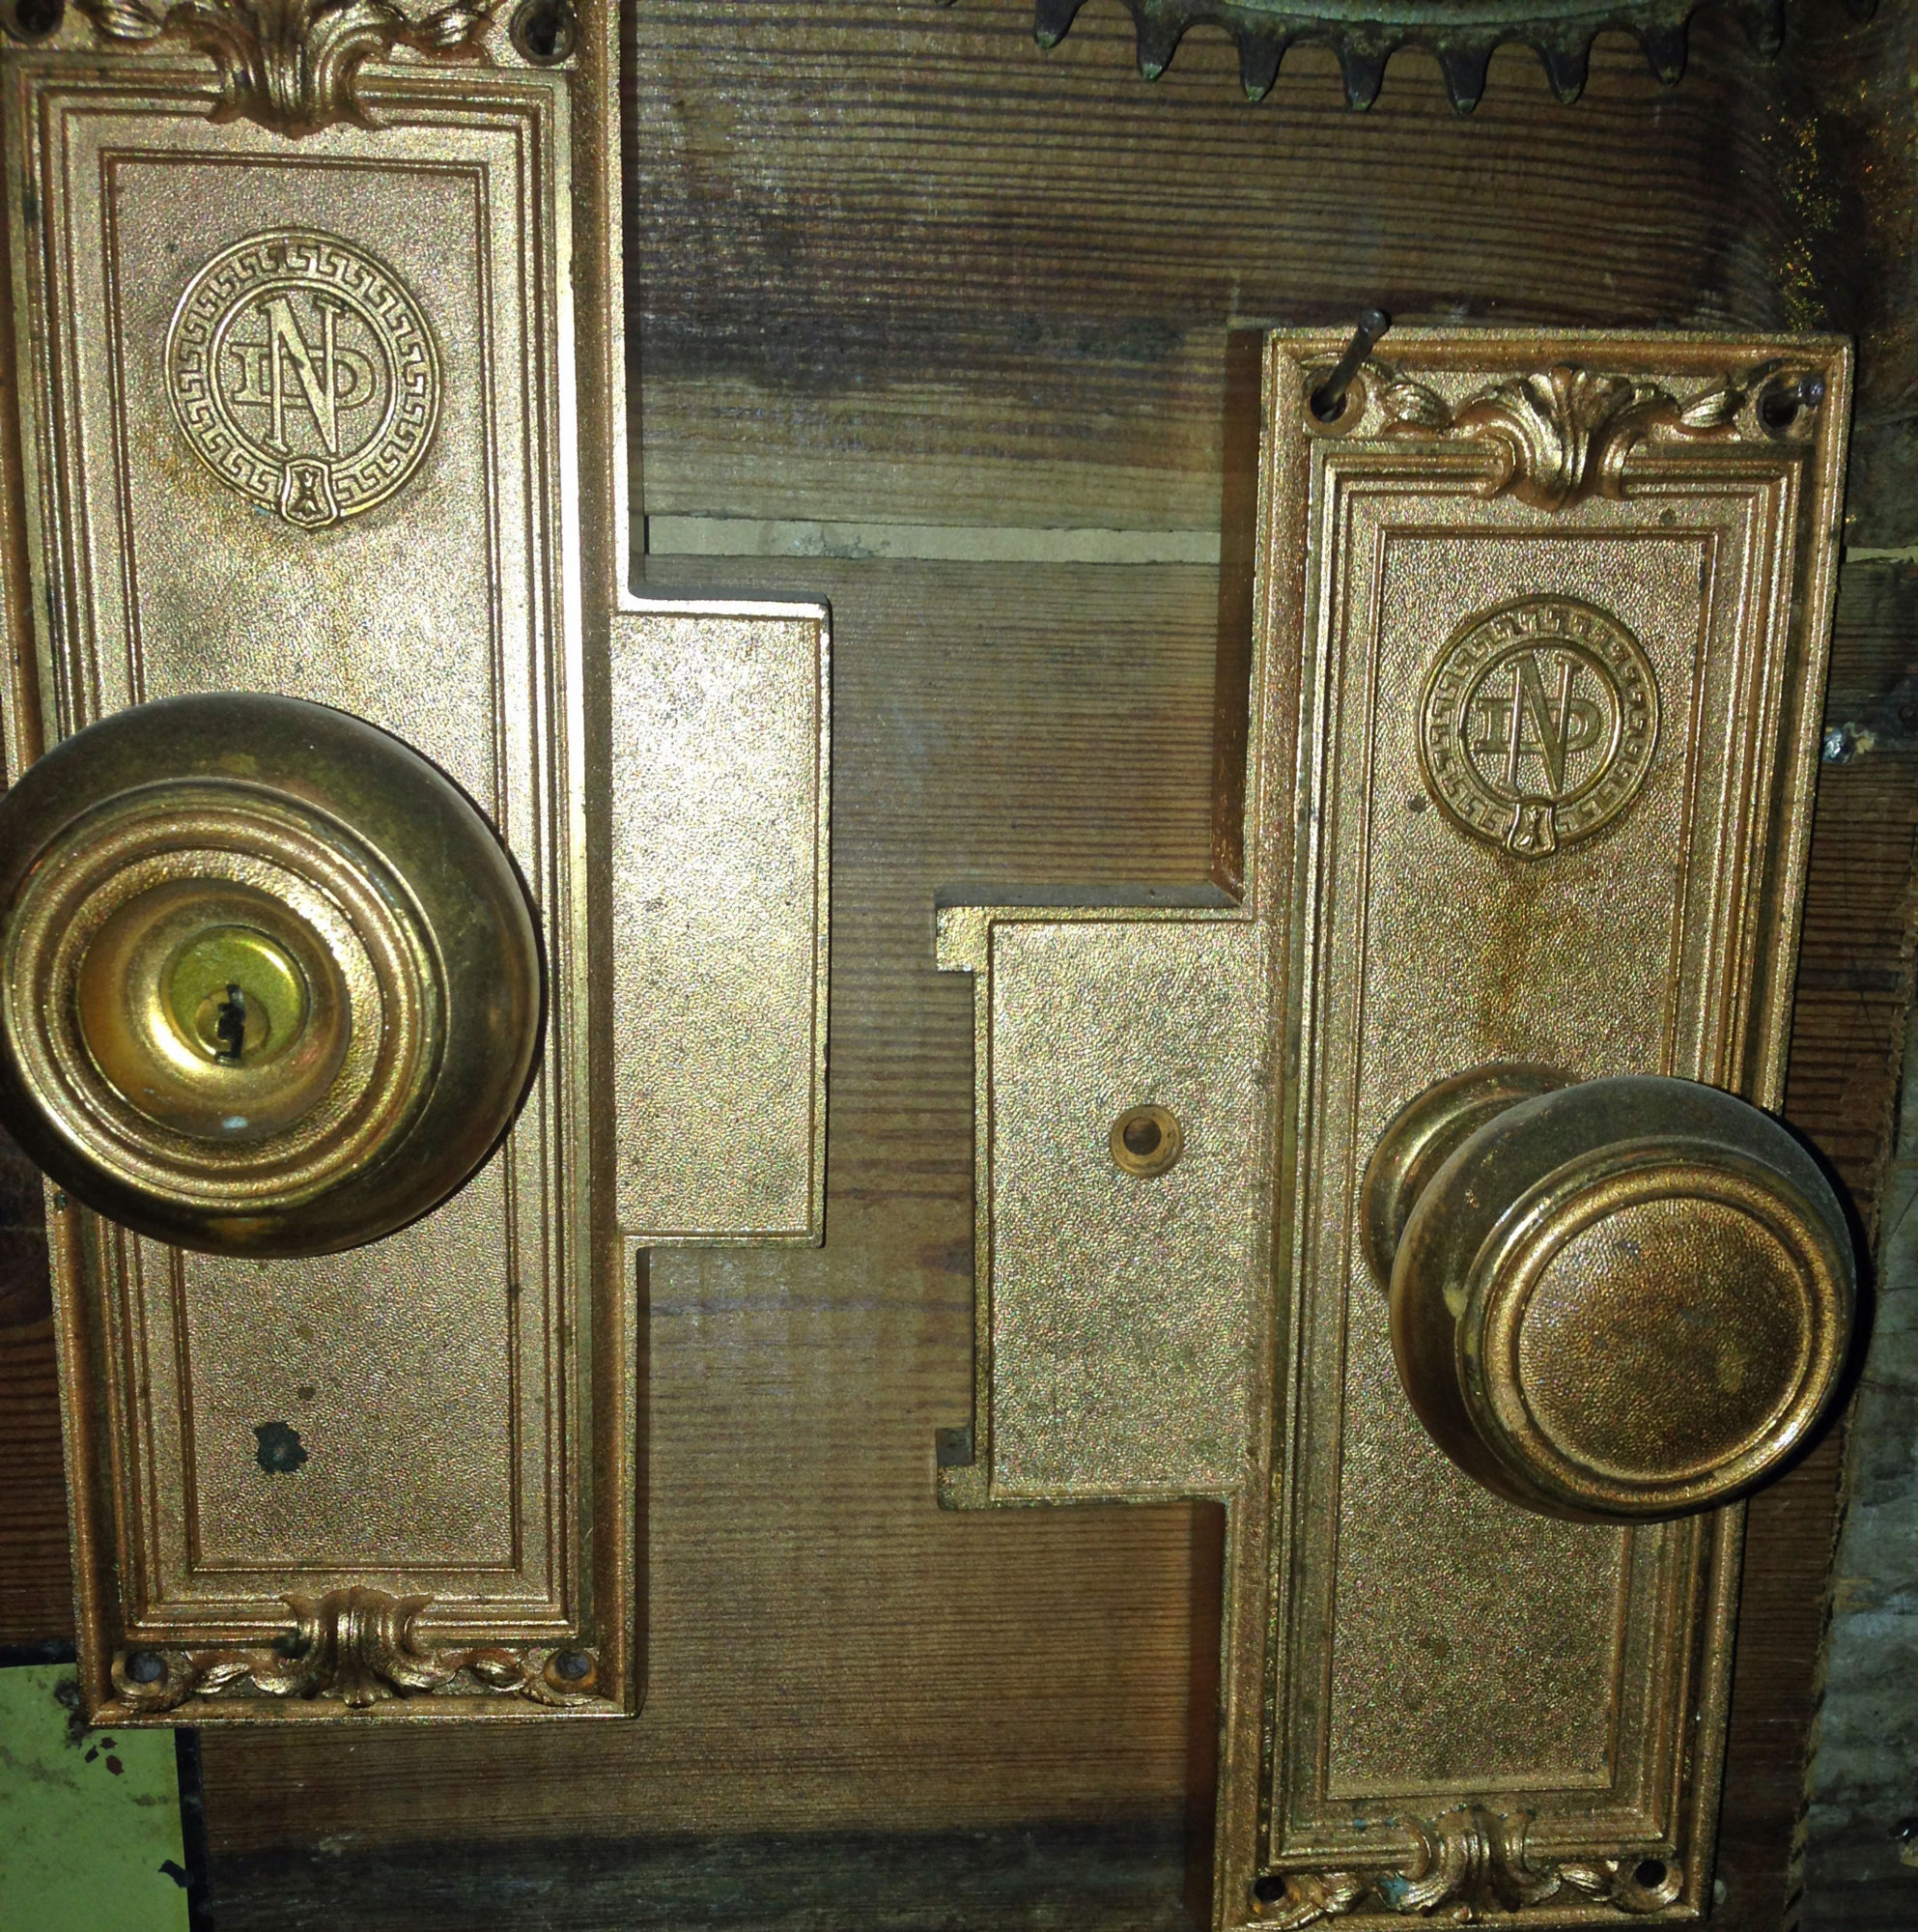 New-Departure-door-knob-1.jpg